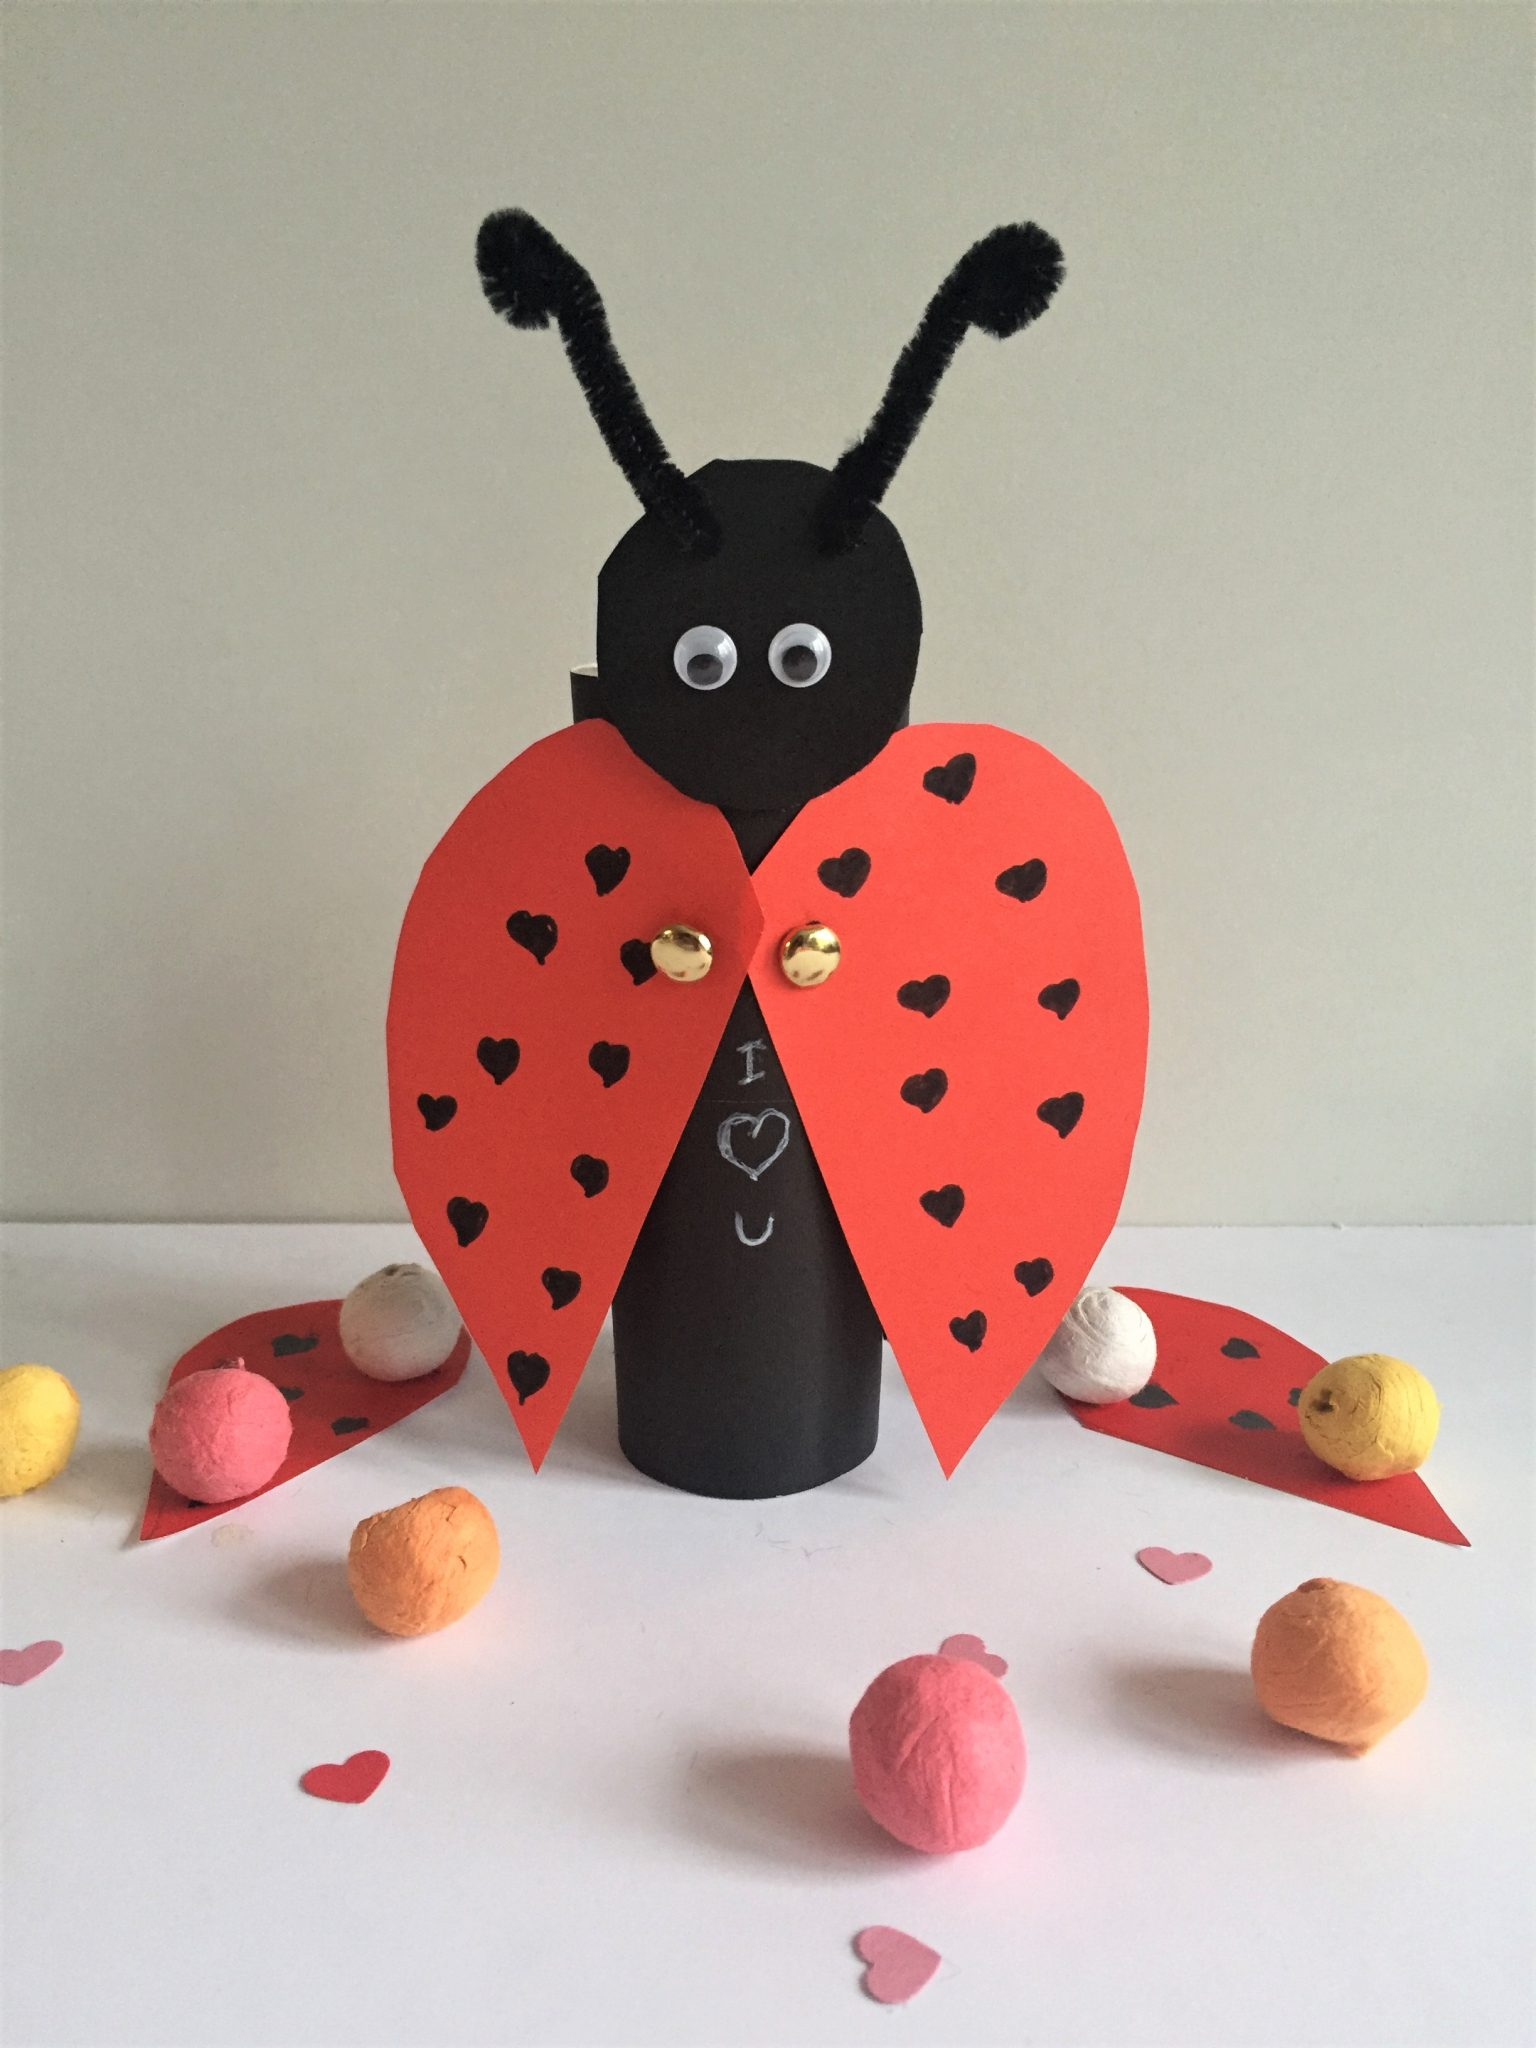 Ladybug Craft for kids Model - Toilet Paper Roll Ladybug craft for kids